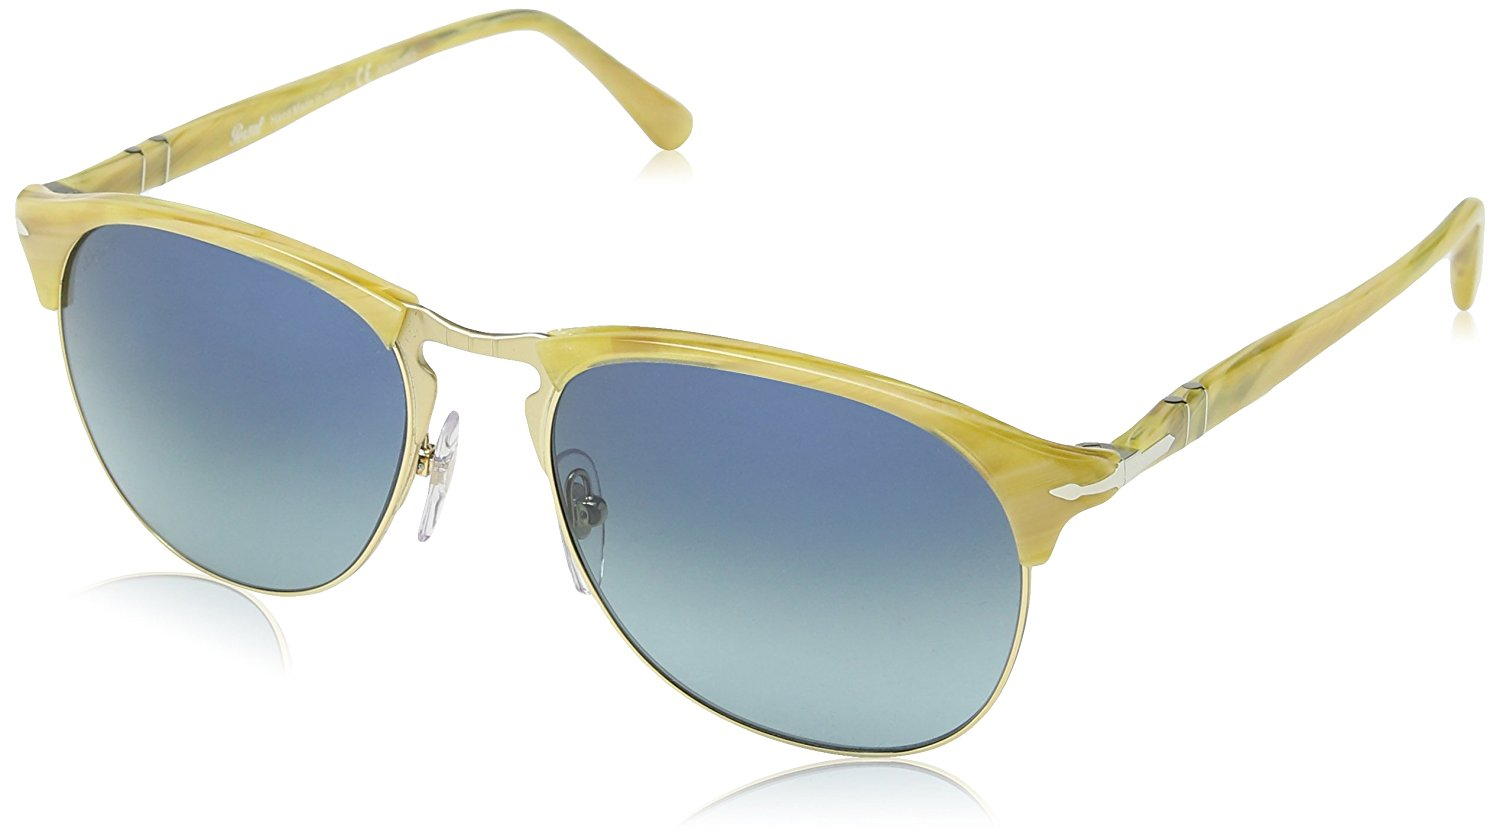 c3e4585be5 Get Quotations · Persol Men s PO8649S Sunglasses Light Horn Light Blue  Gradient Dark Blue 56mm